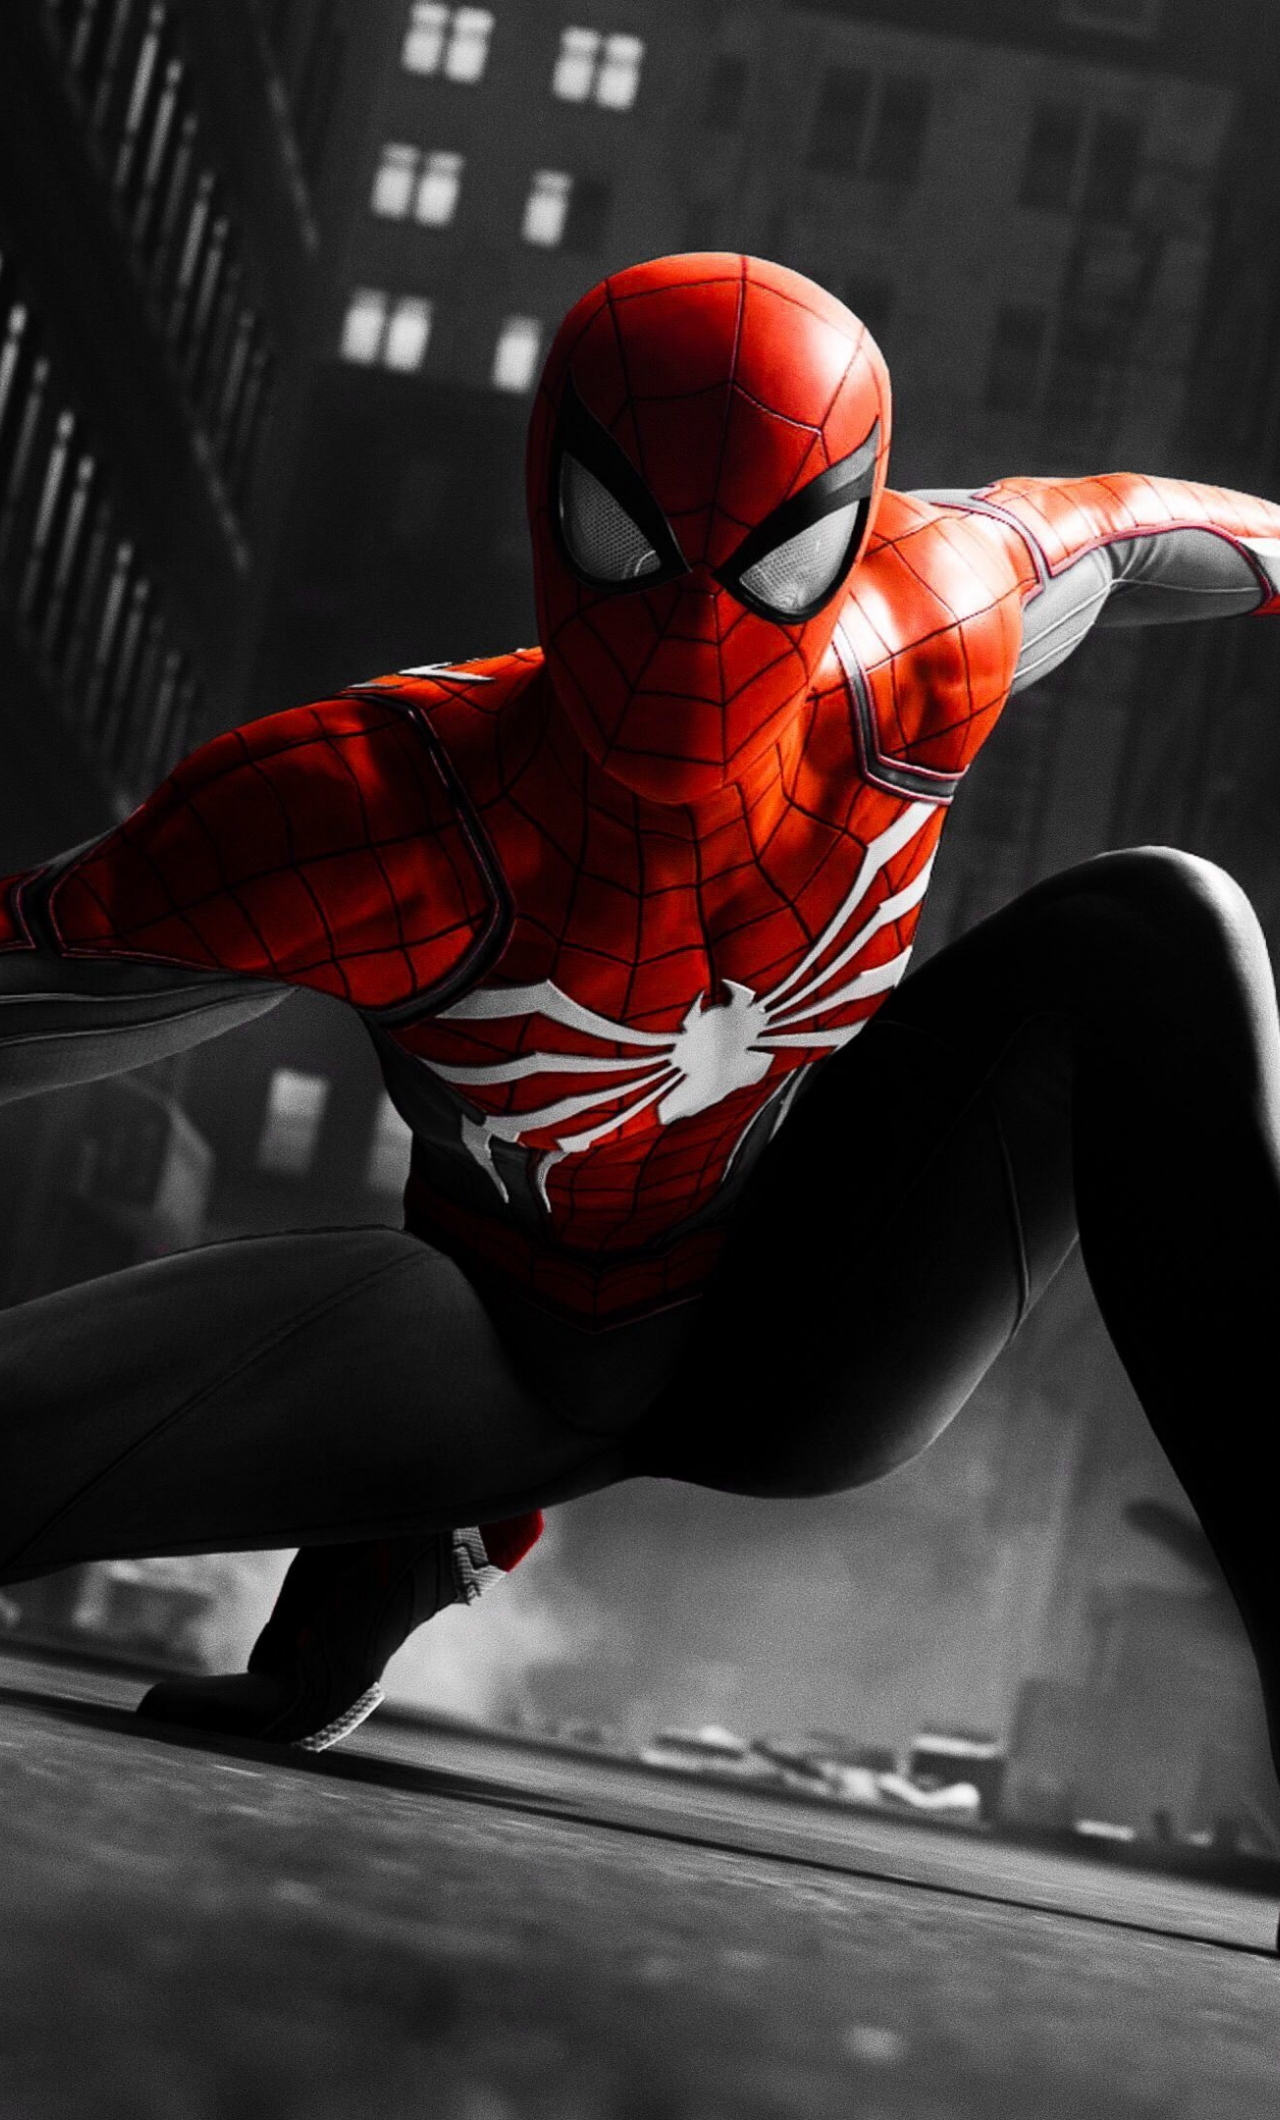 Download 1280x2120 Wallpaper Black And Red Suit Spider Man Video